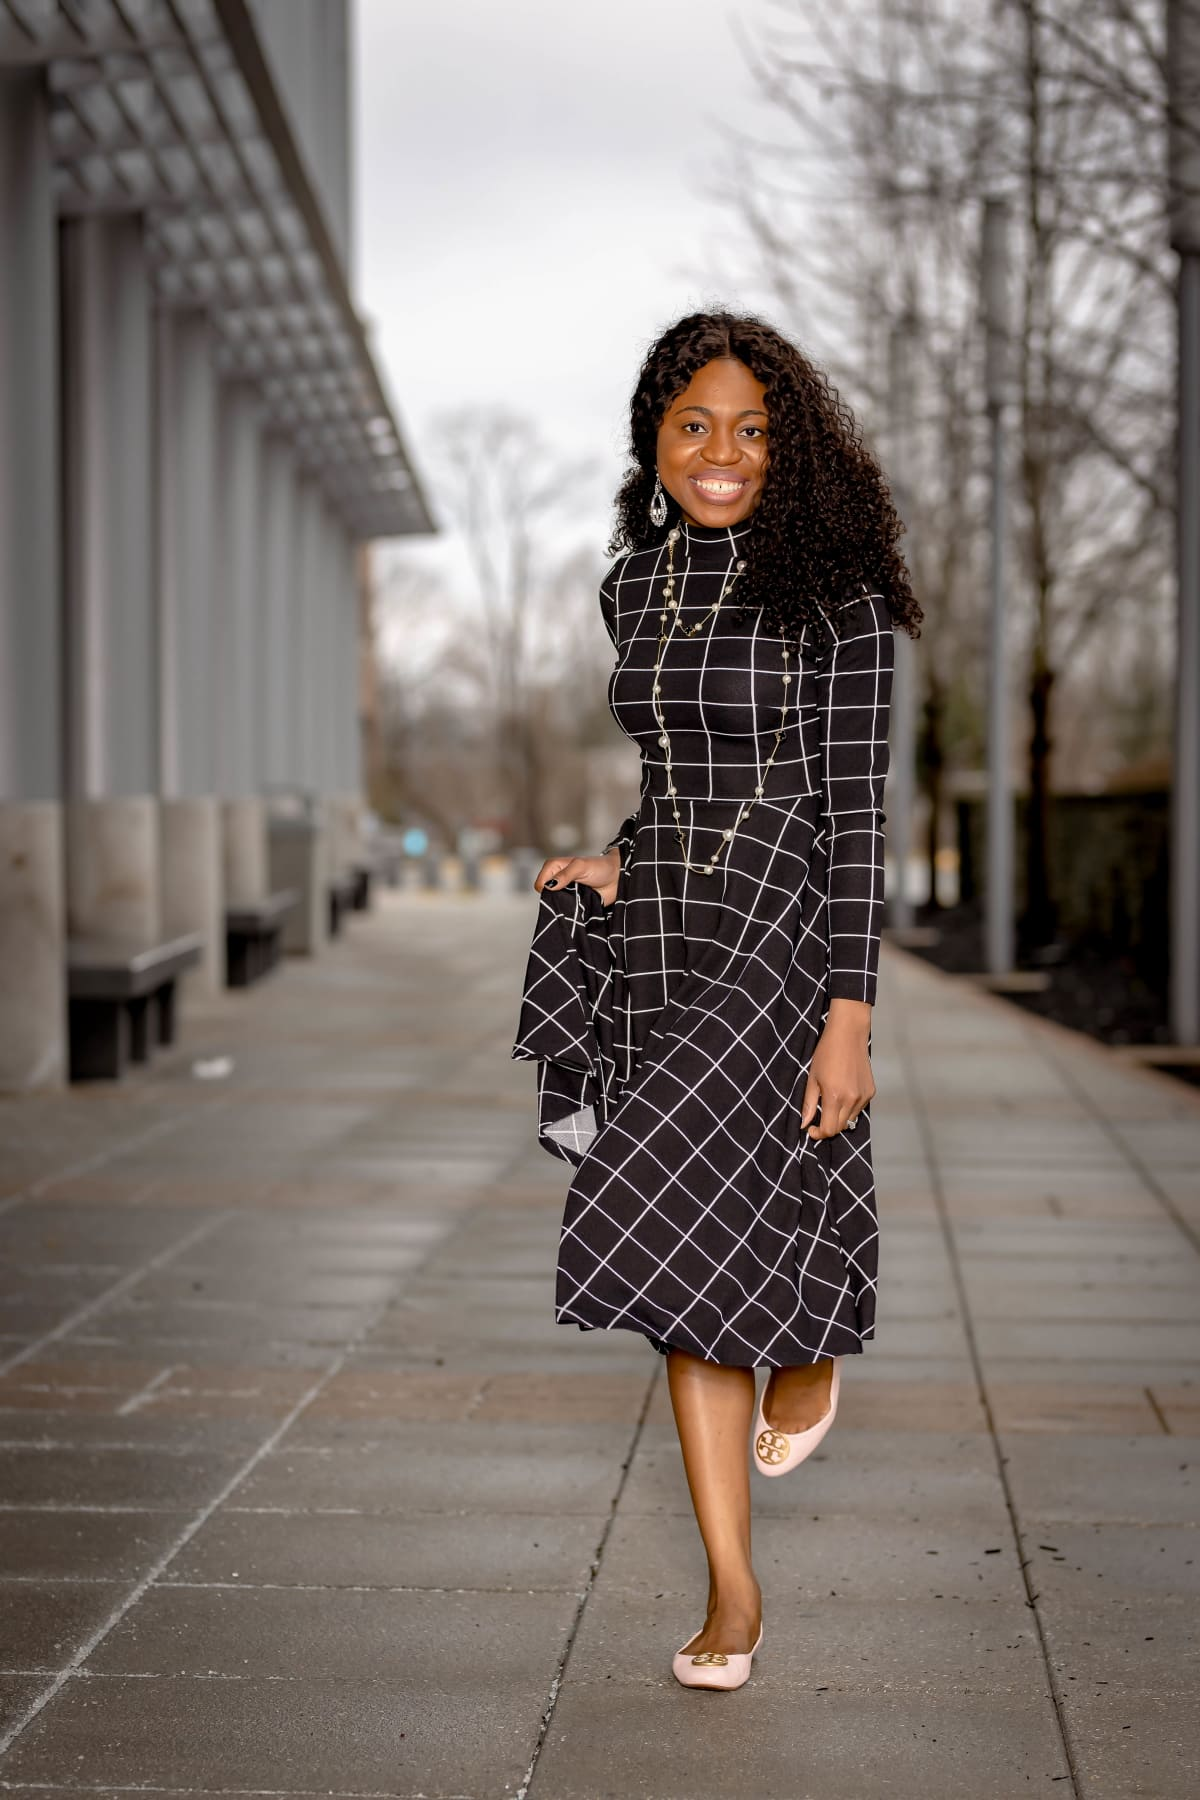 It's no surprise that this A-line dress is hot on Amazon right now. At a wallet-friendly price under $30, you can rock this plaid dress for a variety of occasions. Think #workwear #collegeoutfits #weddingguestdress #fashionoutfits and more!